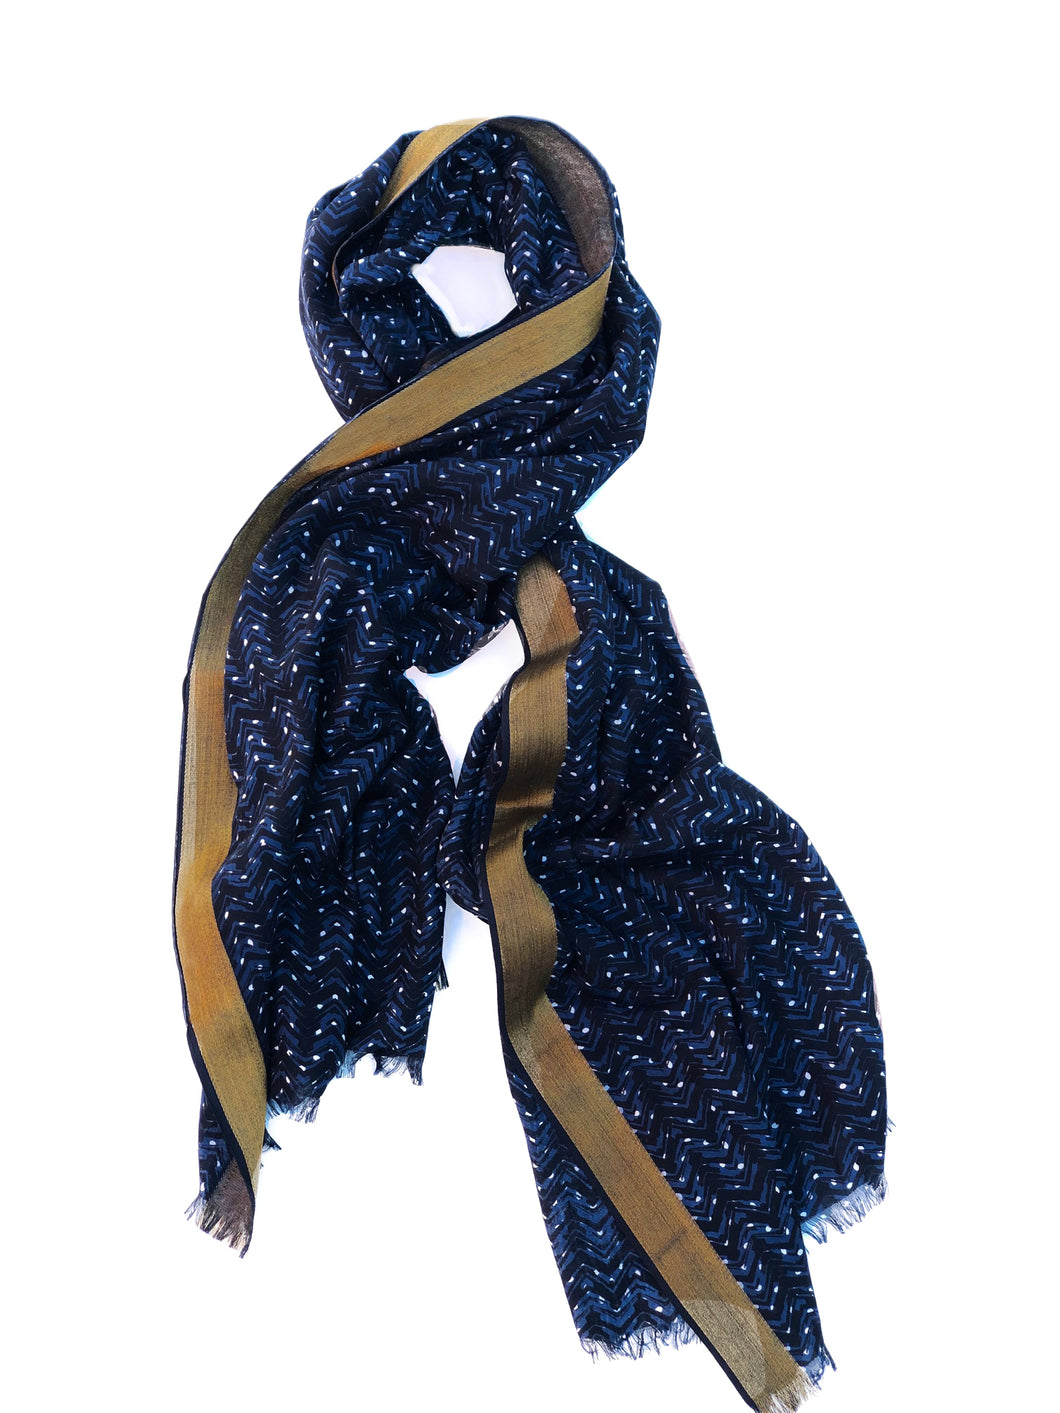 Starry Night Shawl - Indigo and Gold